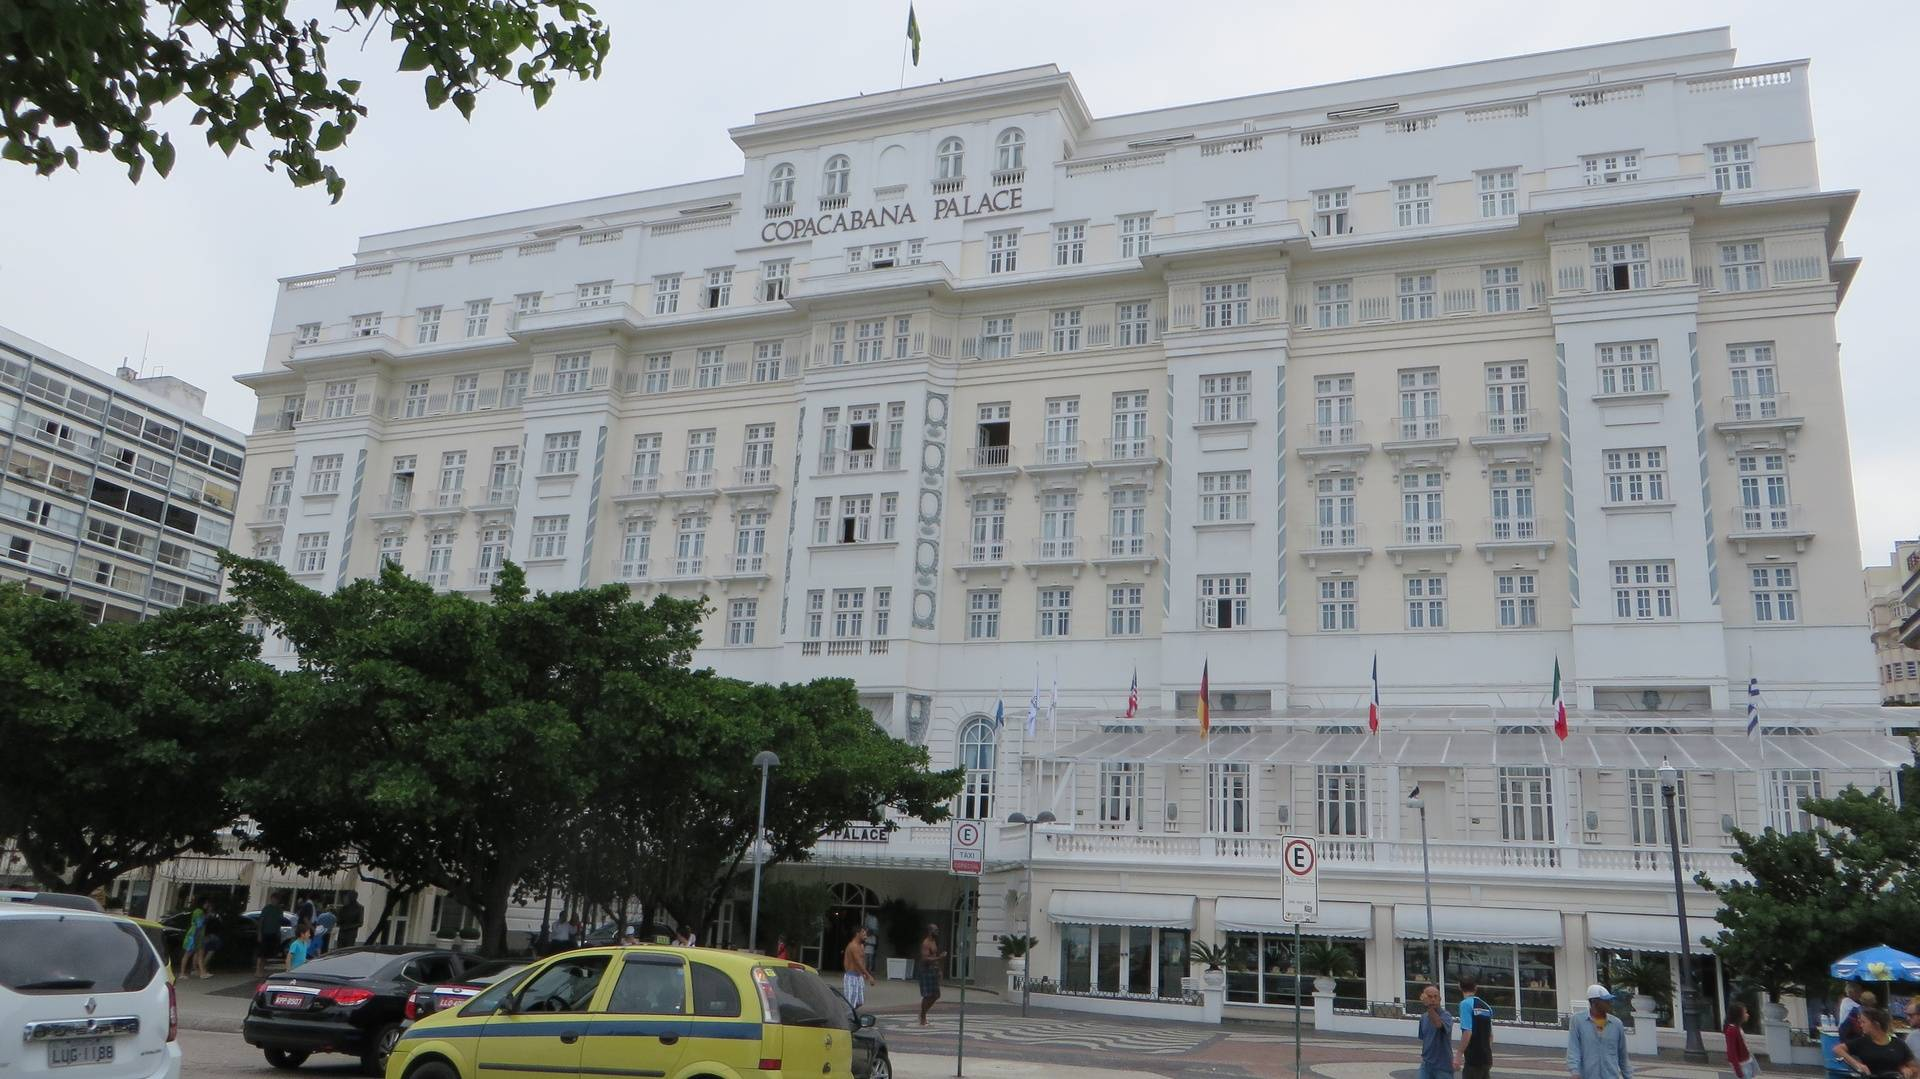 Copacabana Palace Hotel in Rio